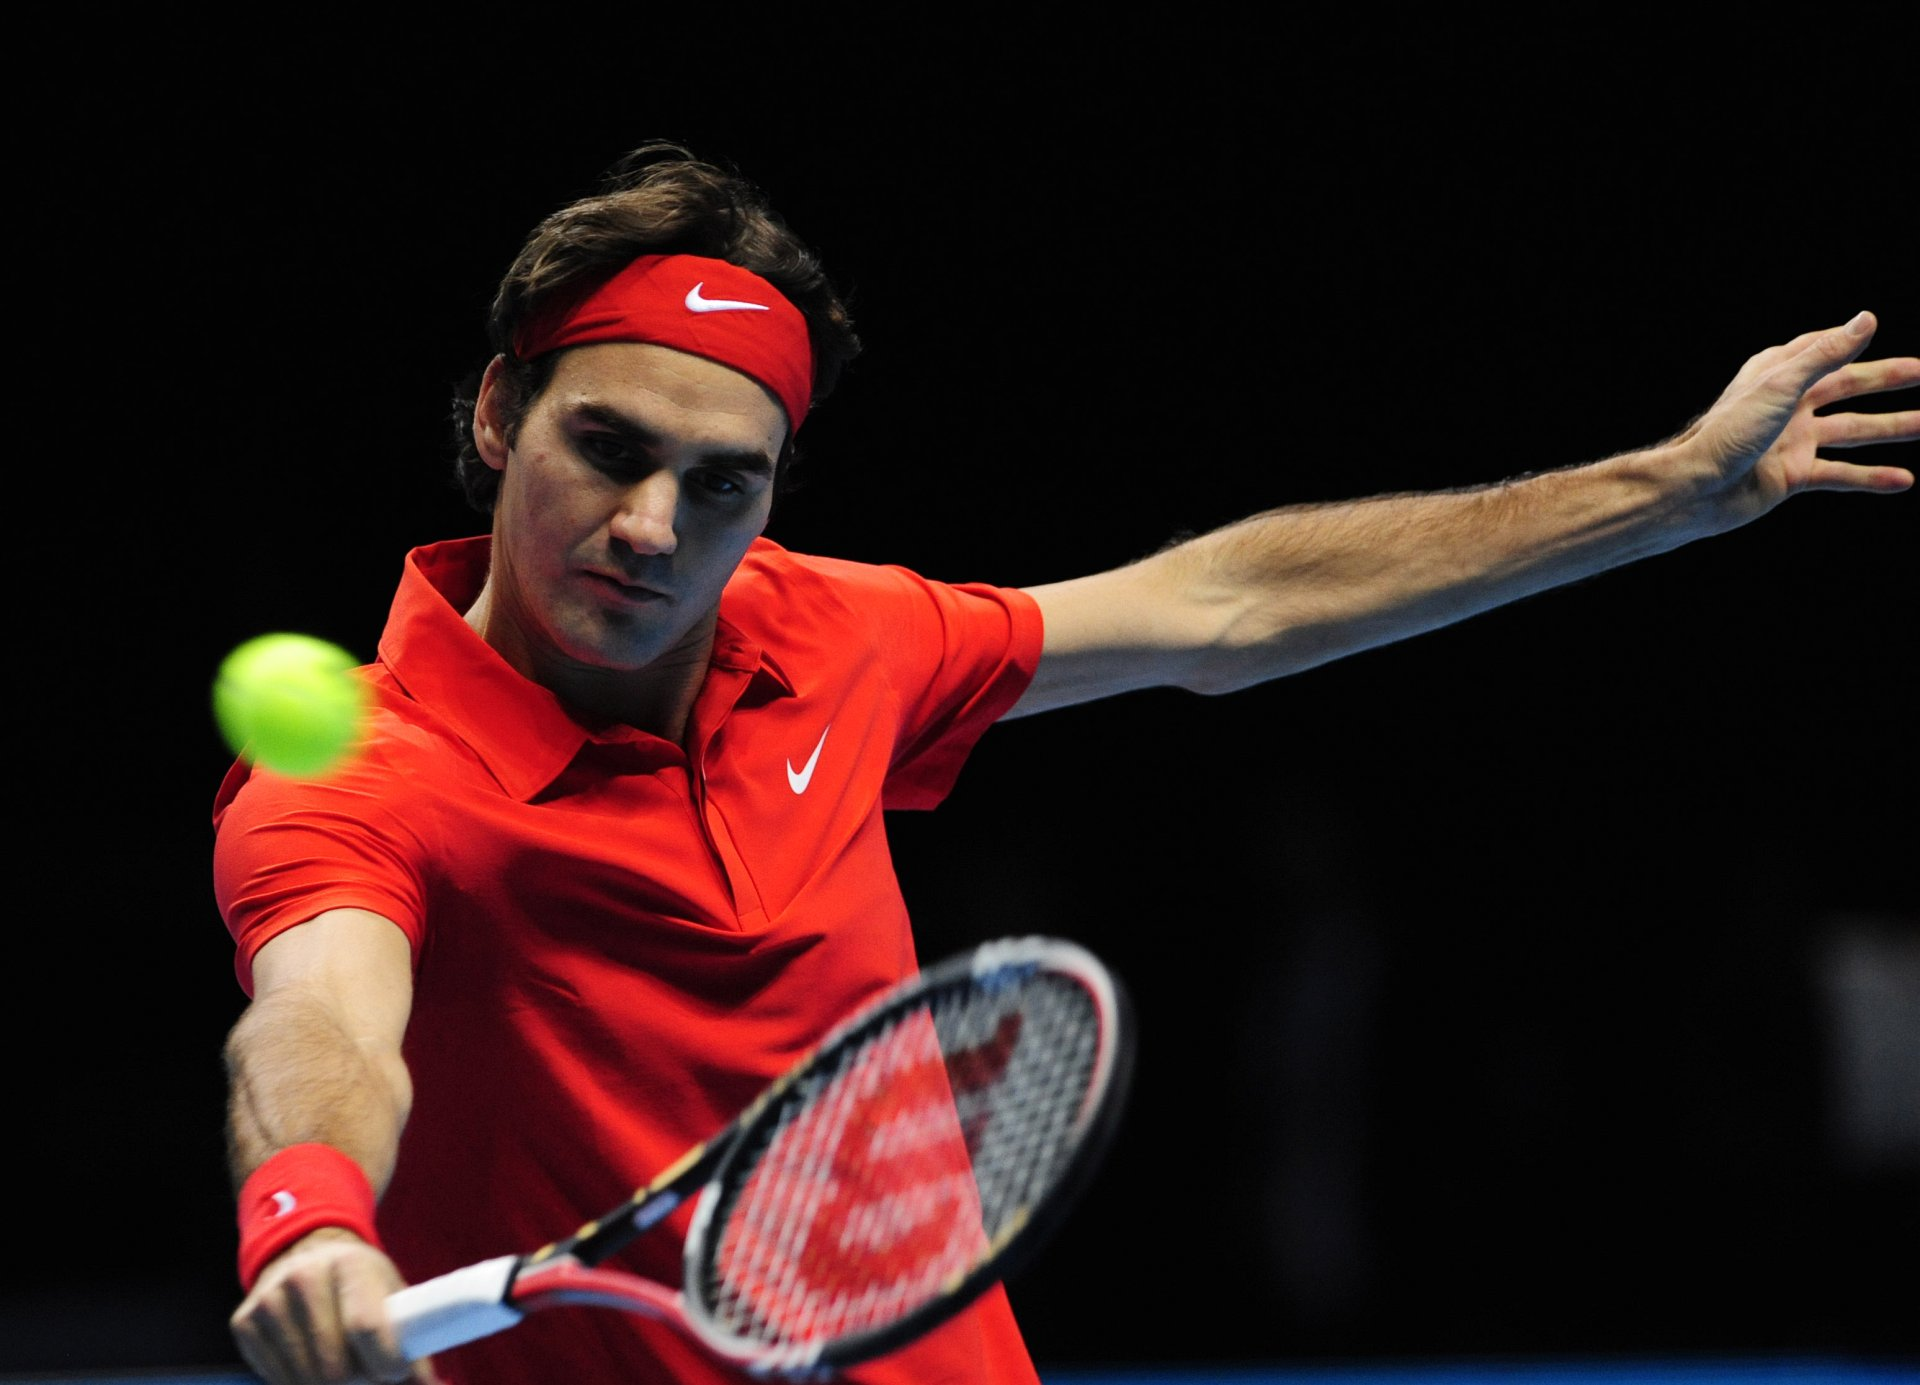 File Roger Federer Wallpapers 13W13ETjpg   4USkY 1920x1385